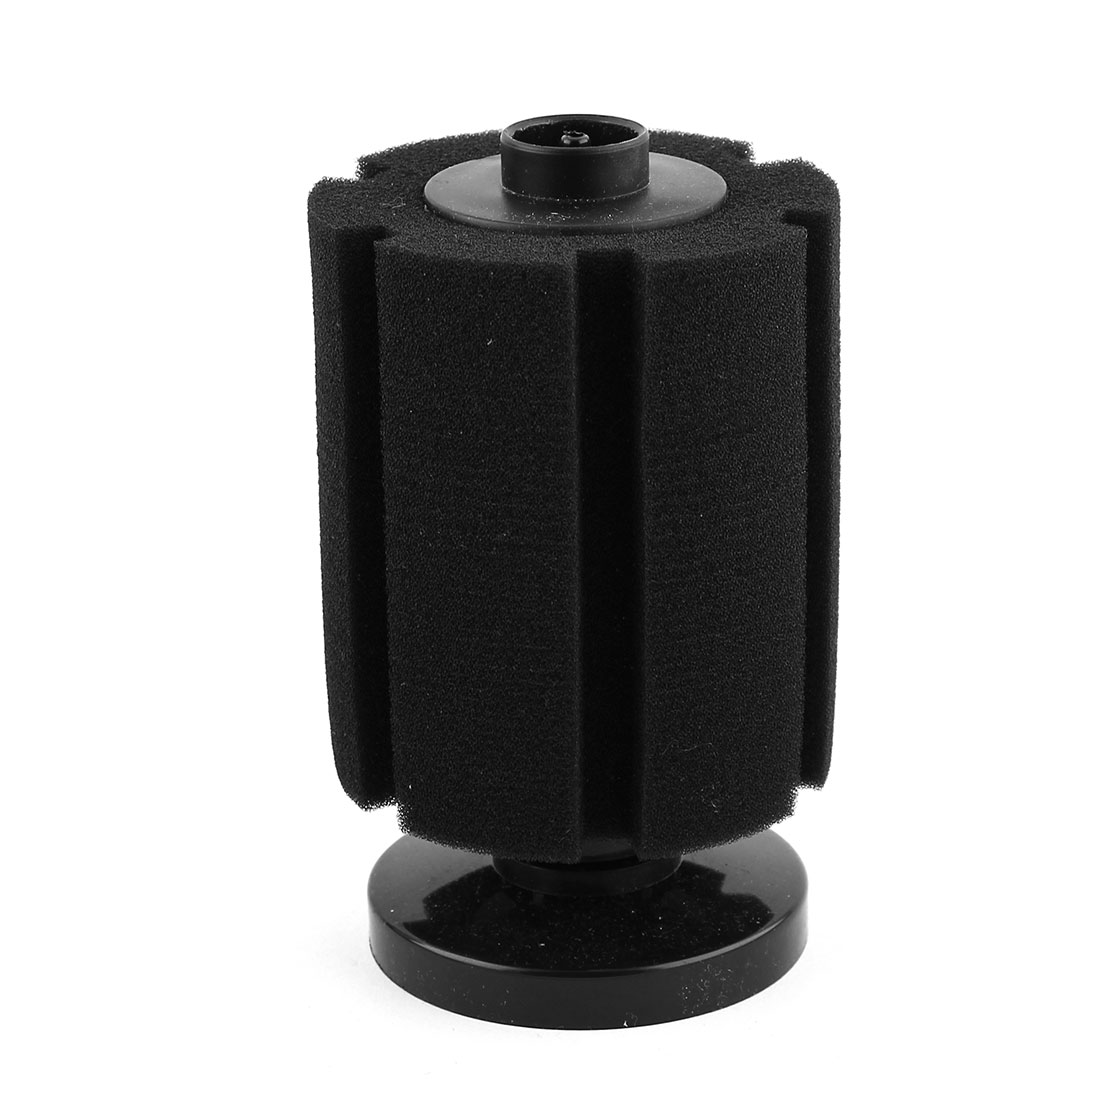 Aquarium Fish Tank Sponge Cylinder Shaped Biochemical Water Filtration Filter Black